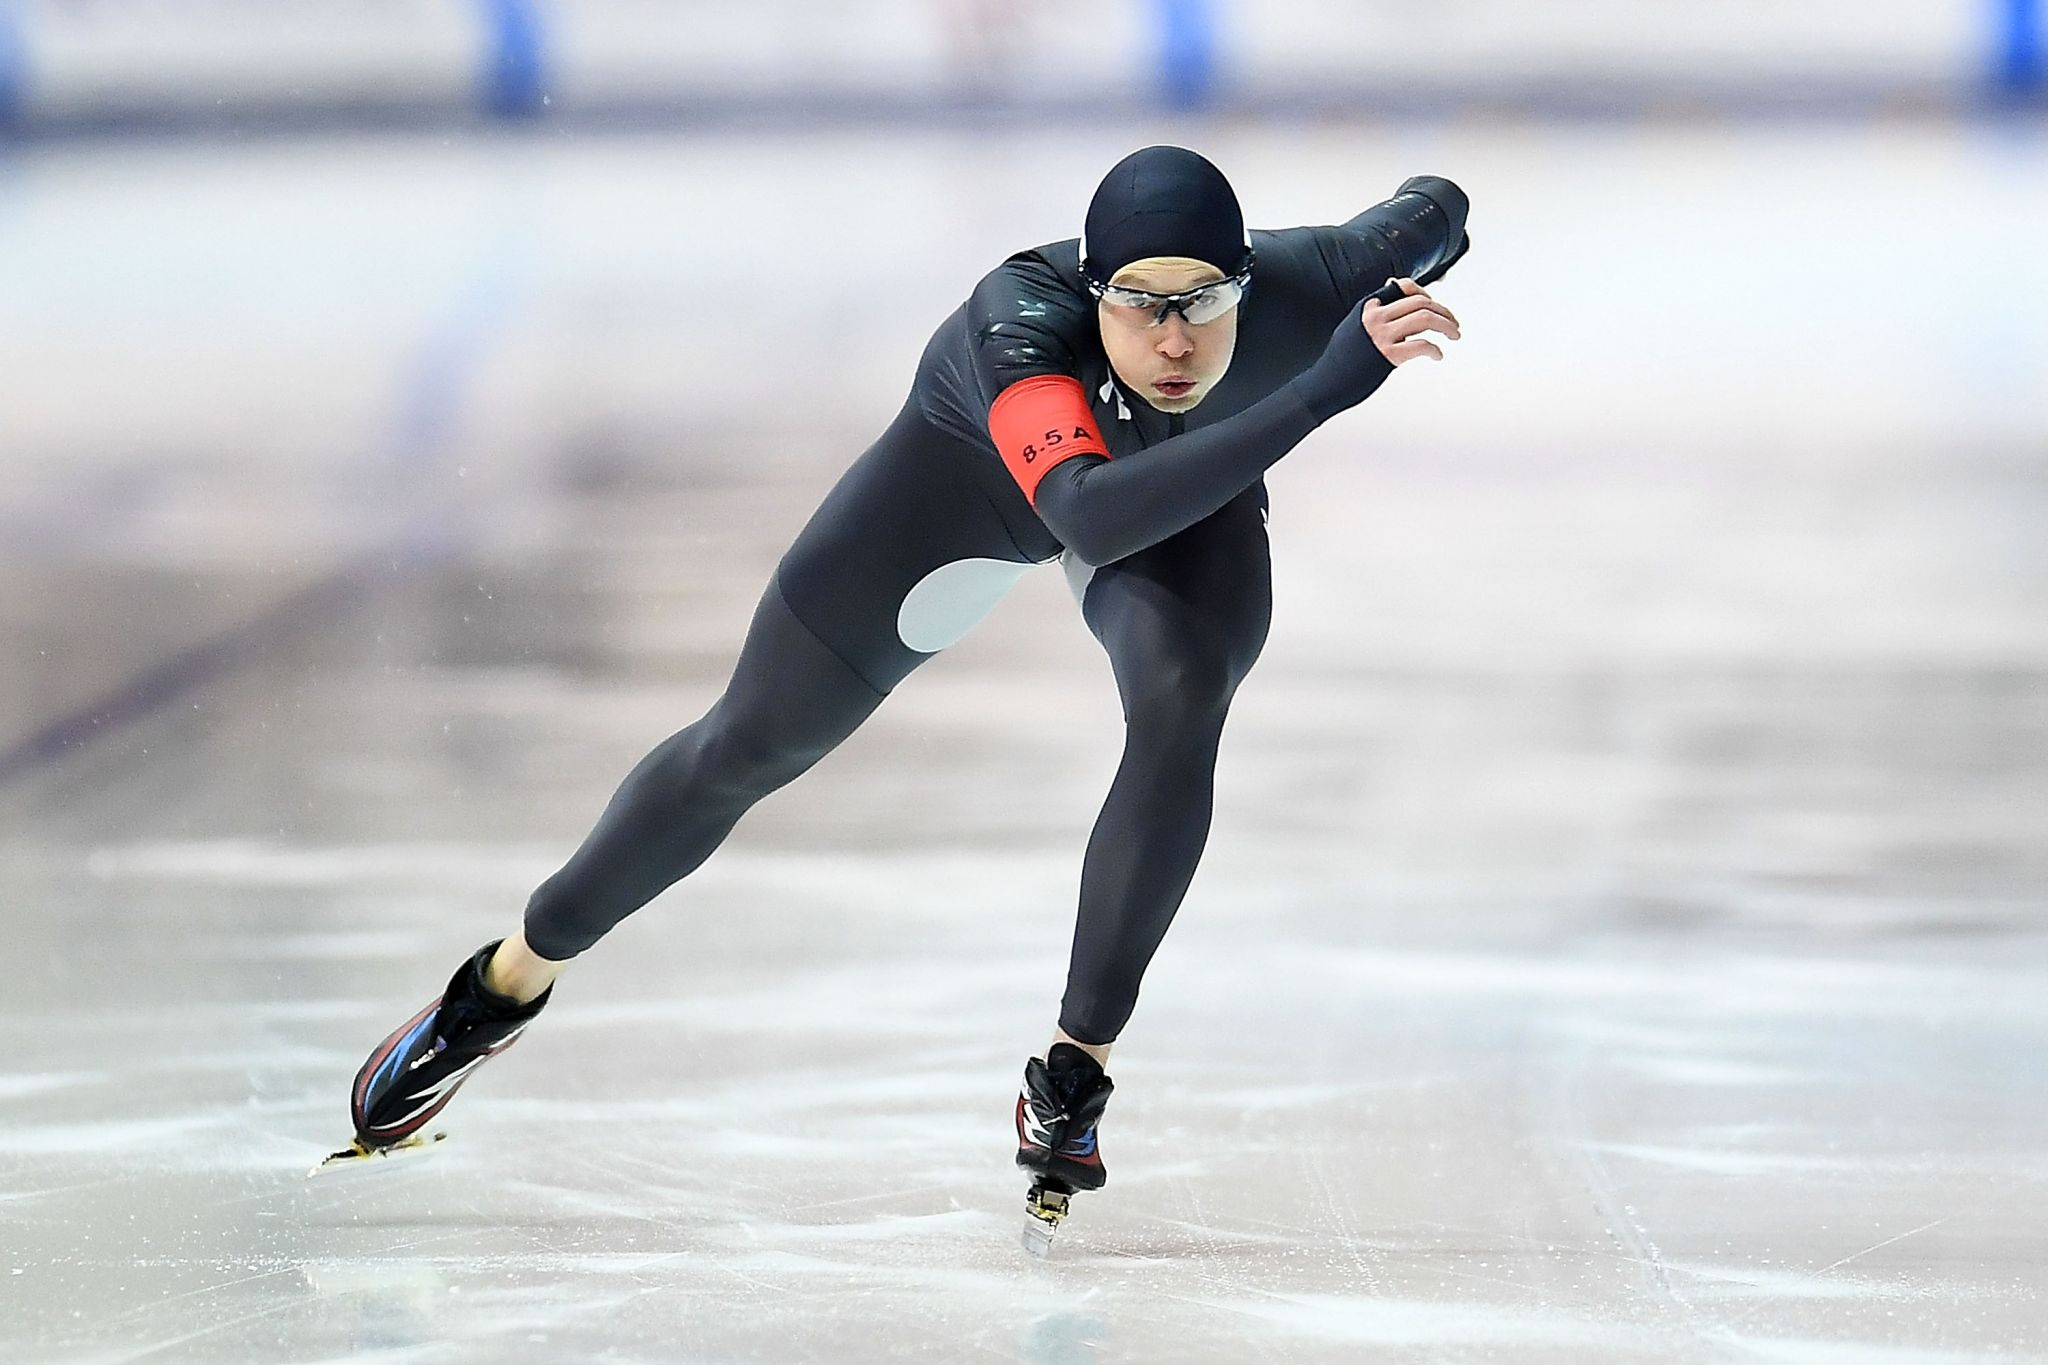 Meet the 2018 Winter Olympians with Texas ties - Houston Chronicle